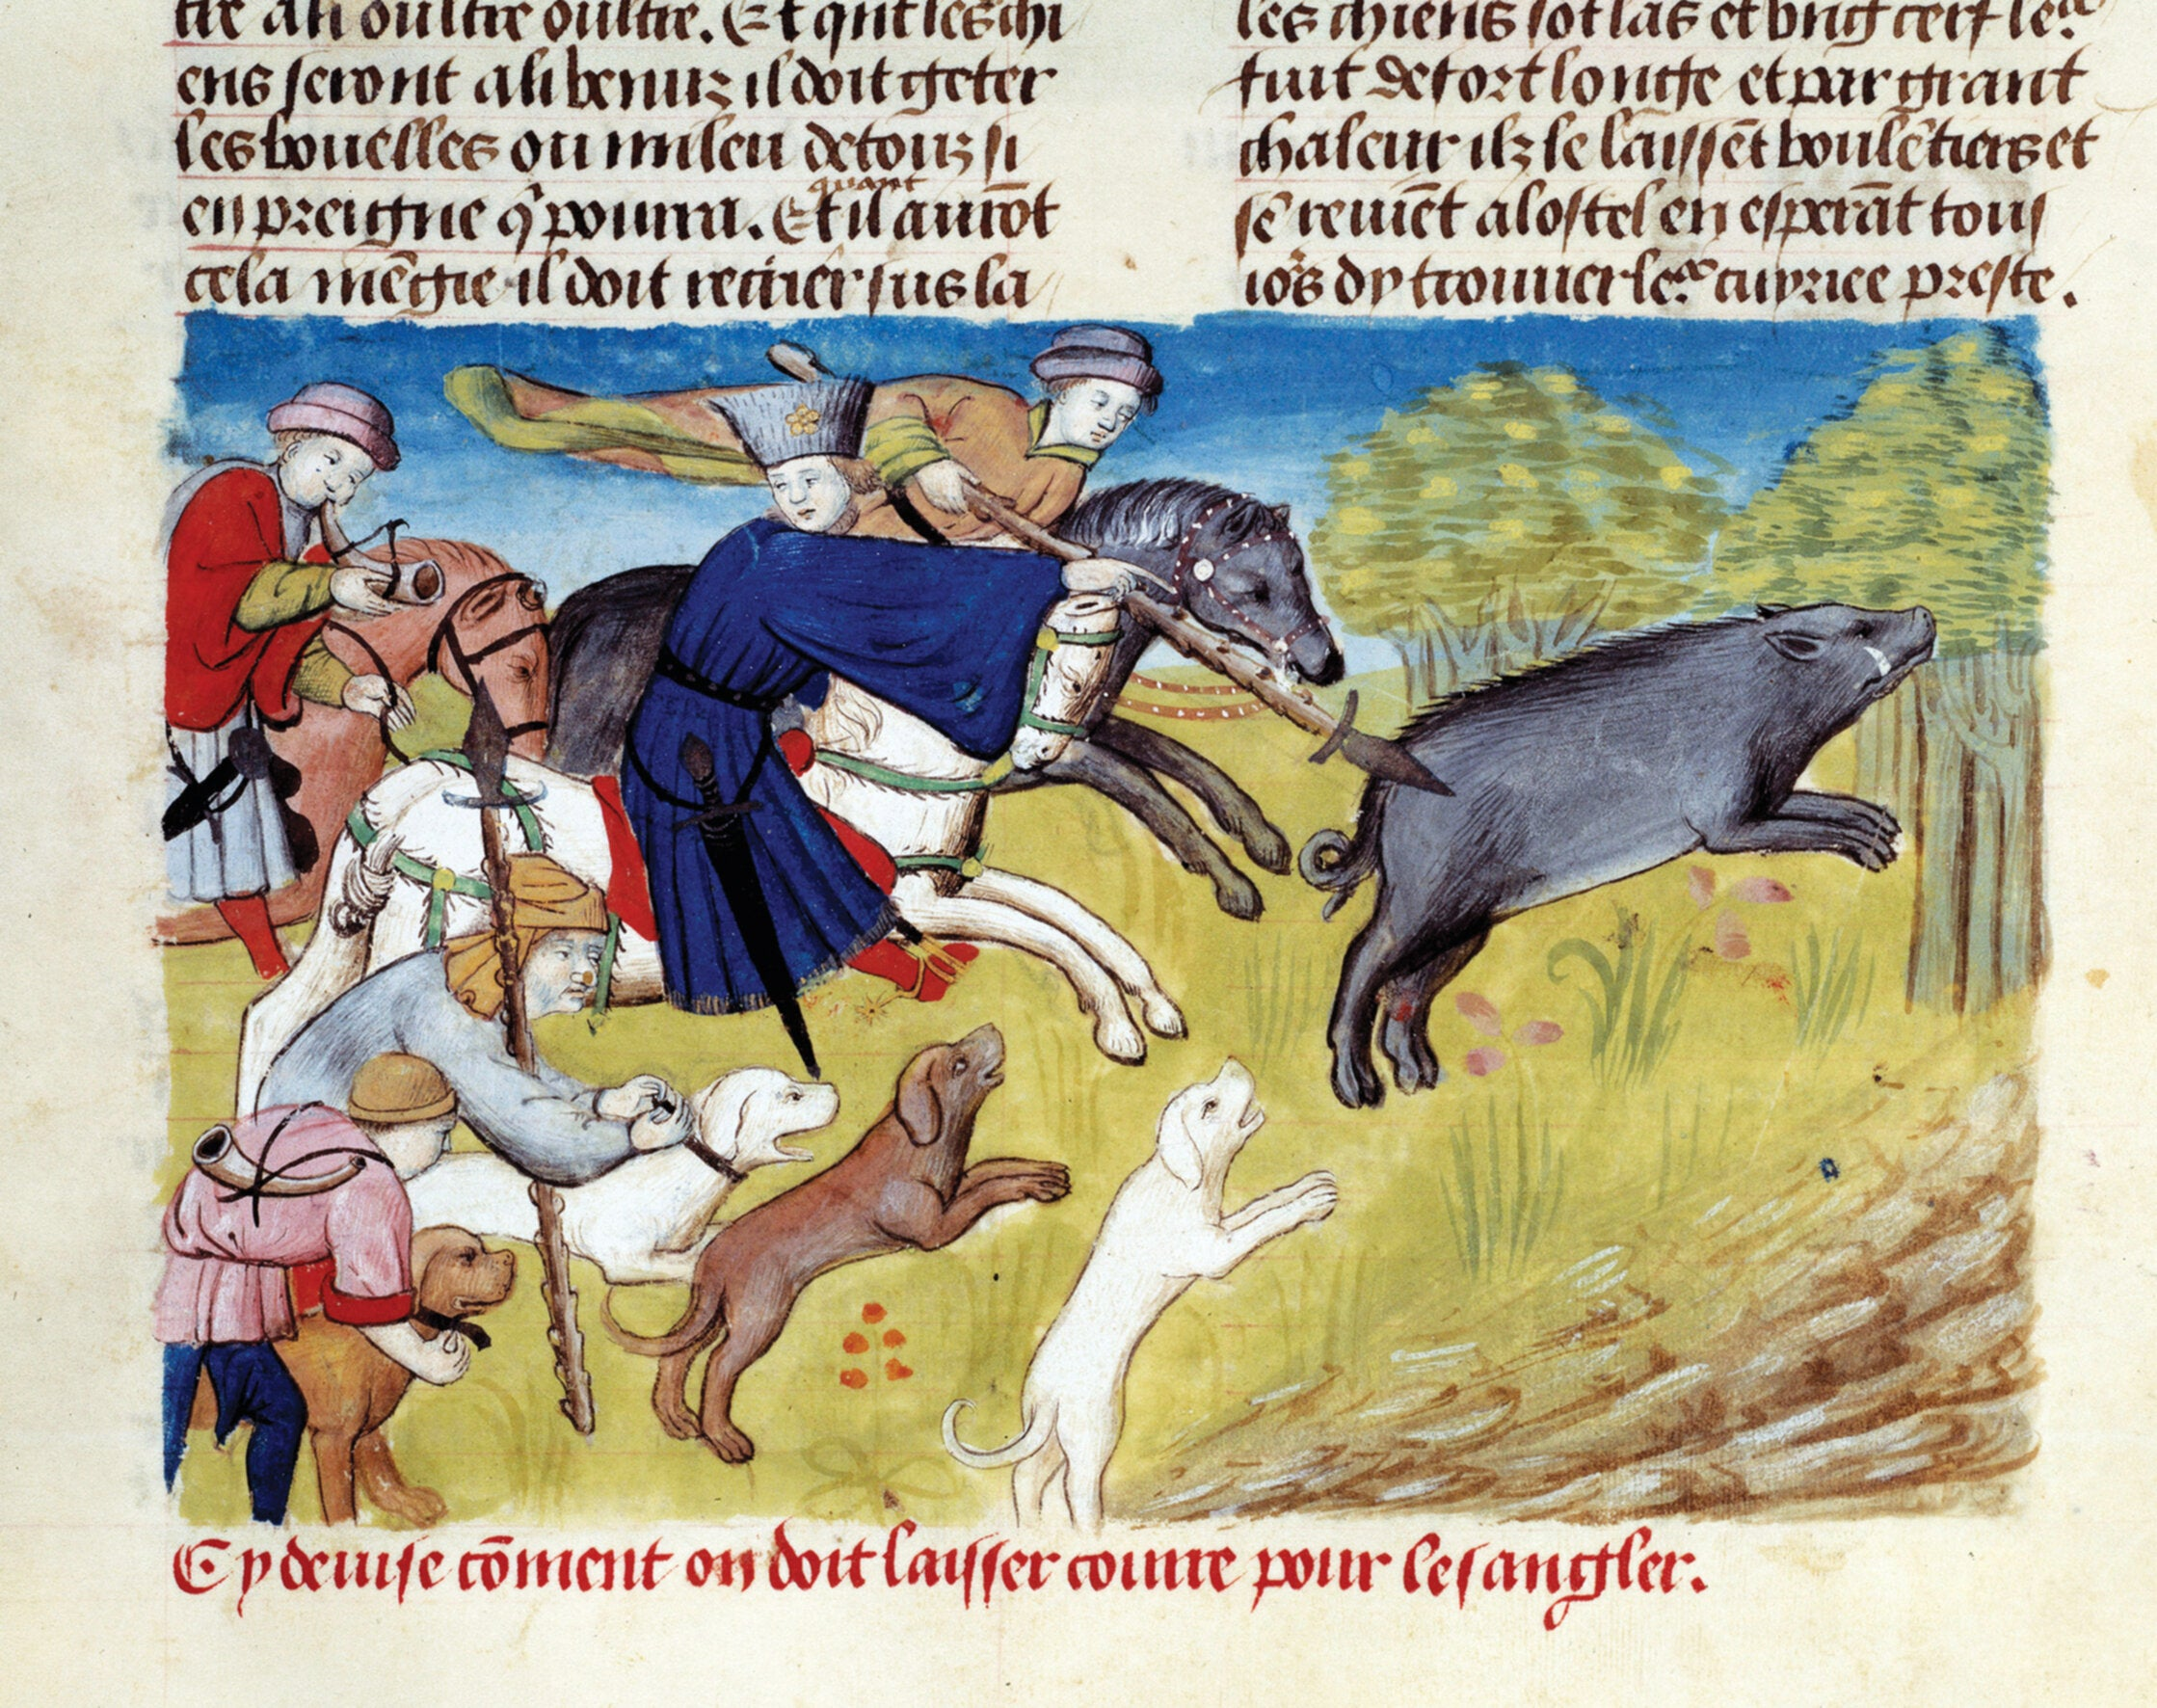 Hunting now provokes revulsion – but in medieval Europe it had very different social connotations